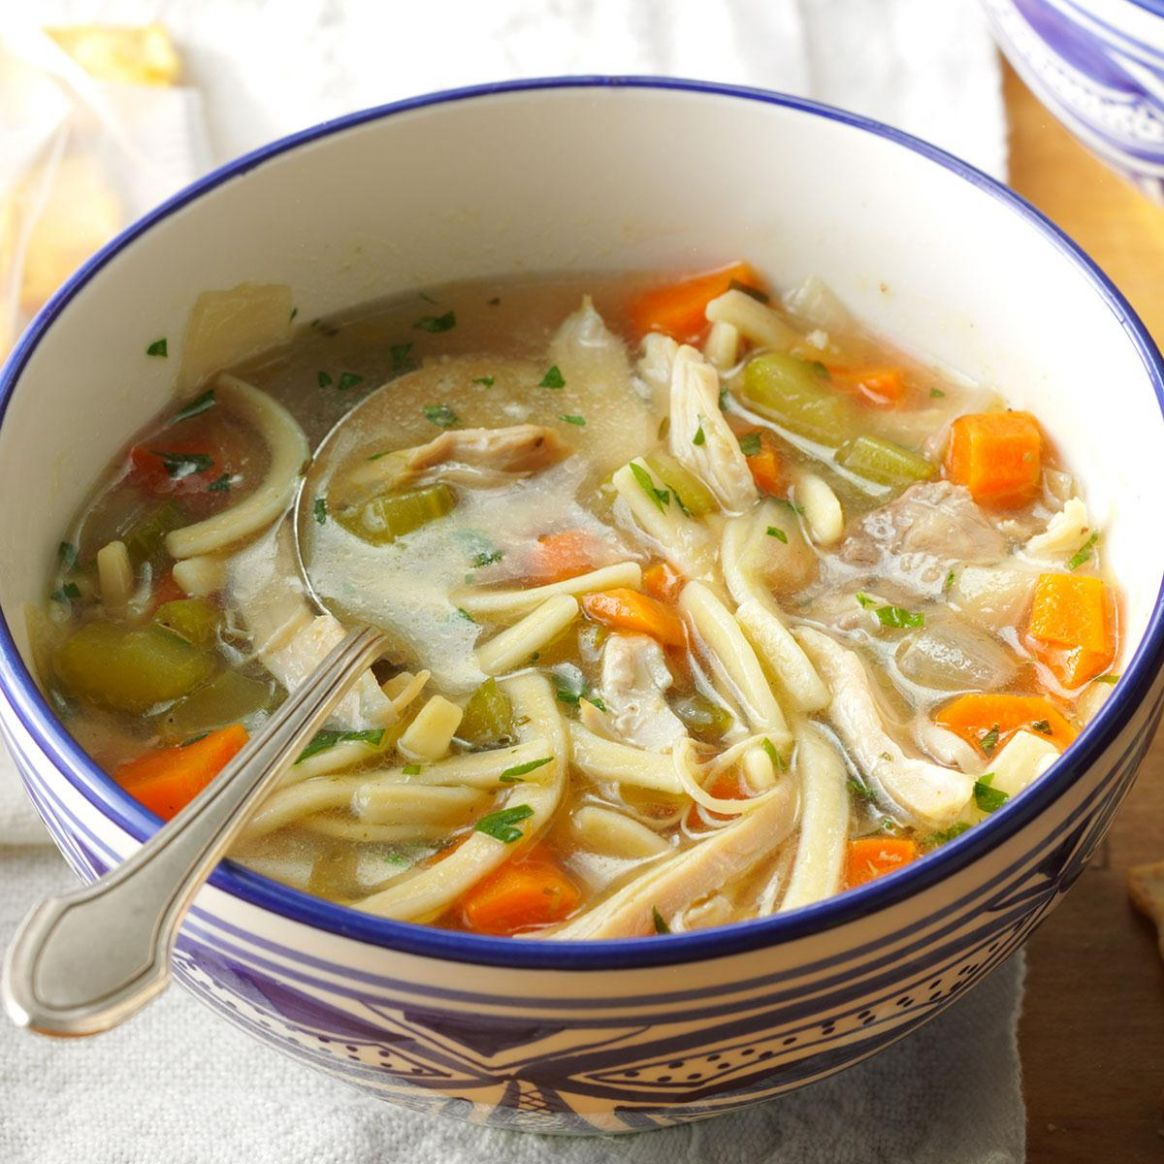 The Ultimate Chicken Noodle Soup - Recipes Chicken Noodle Soup